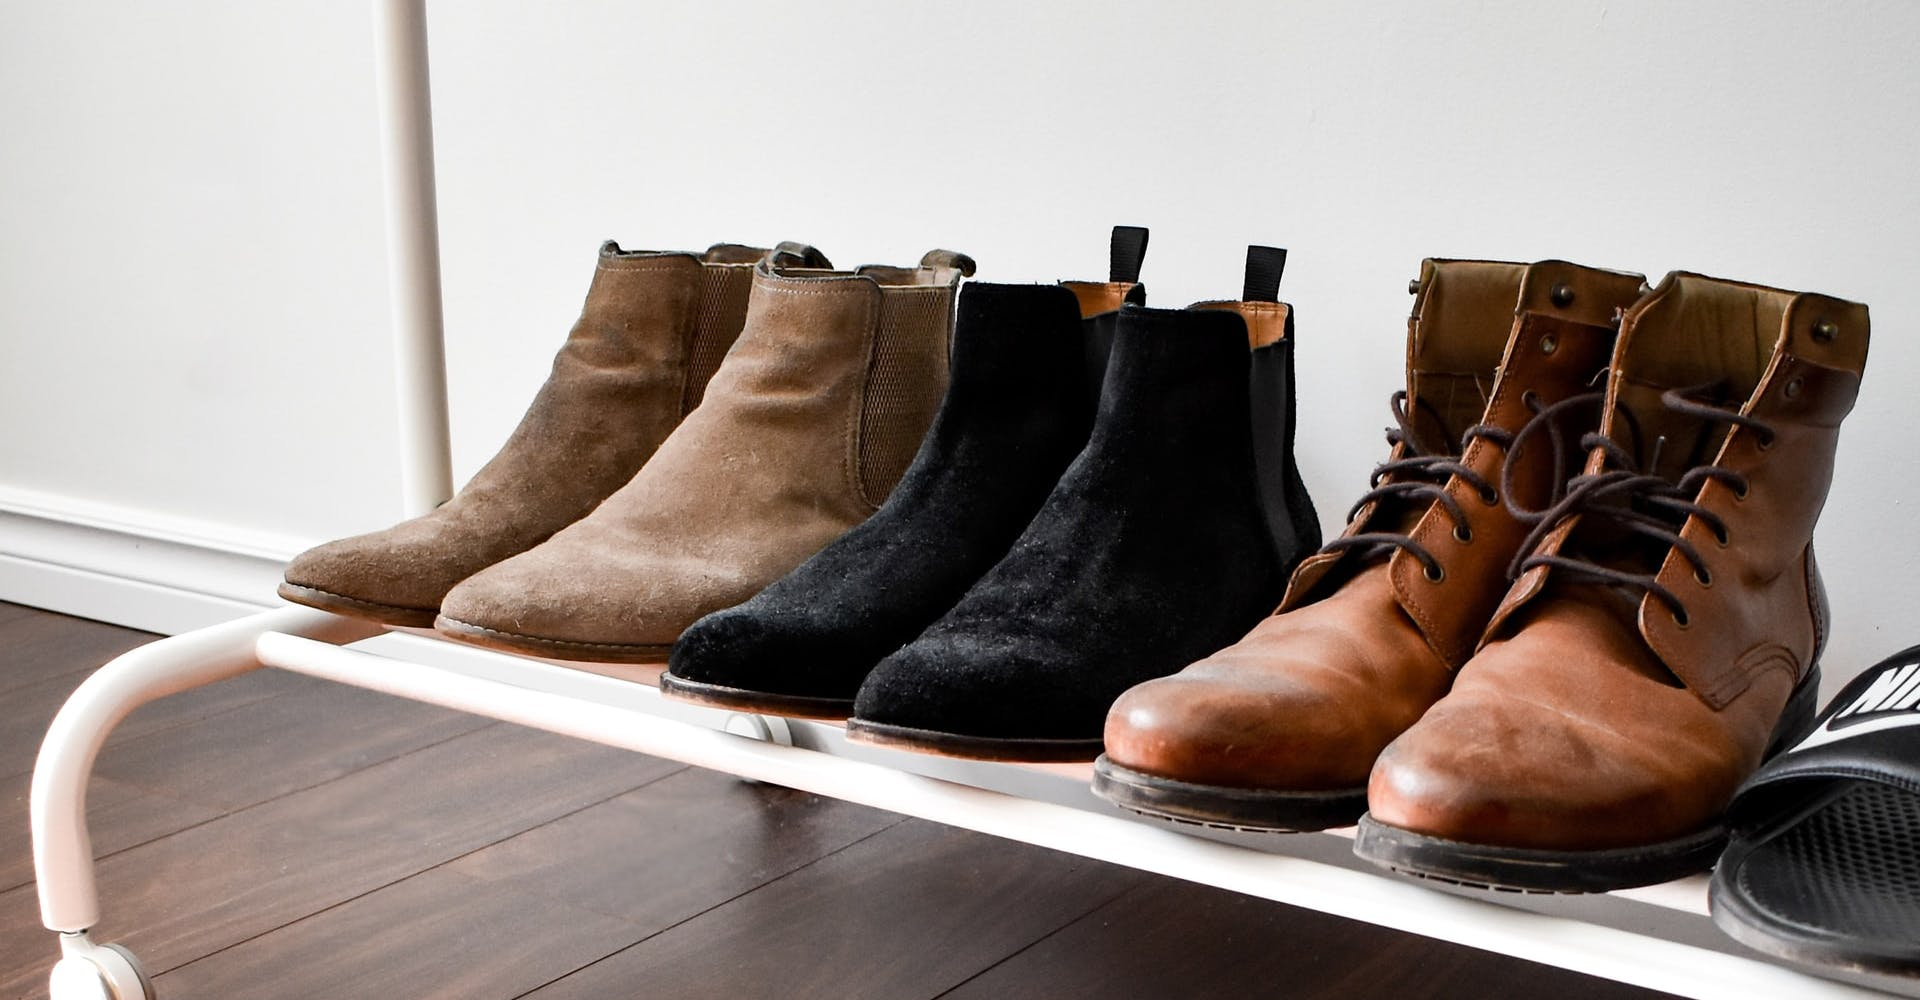 suede shoes in a row